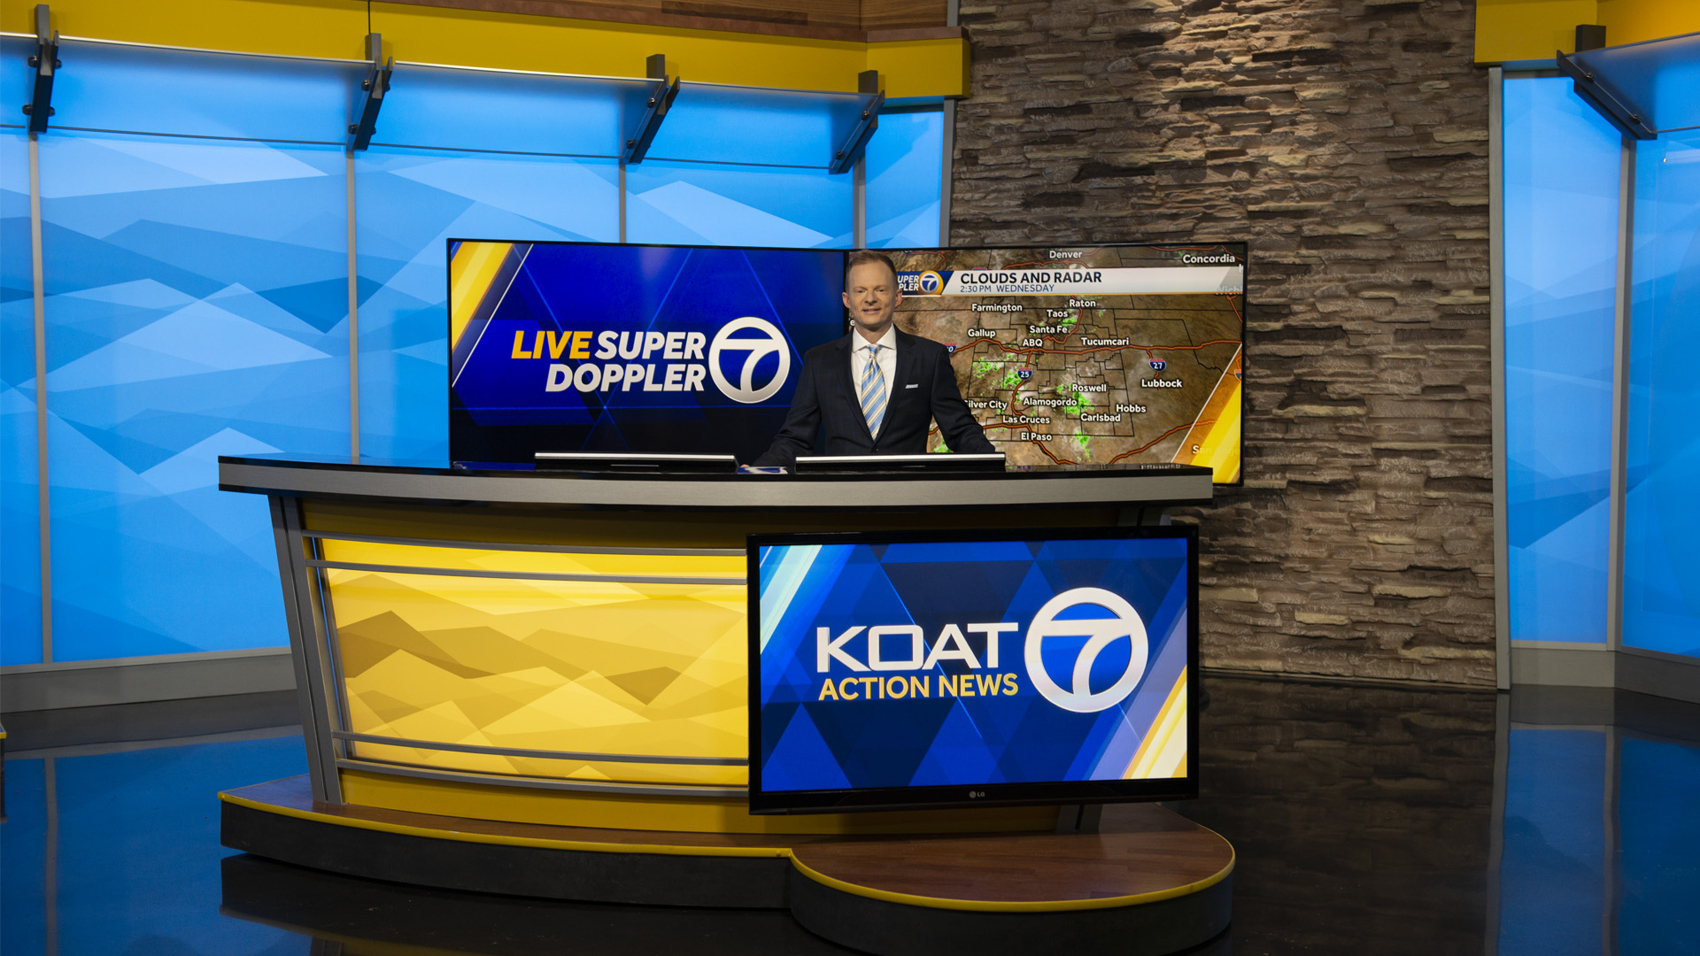 ncs_KOAT-TV-Studio-Devlin_00015